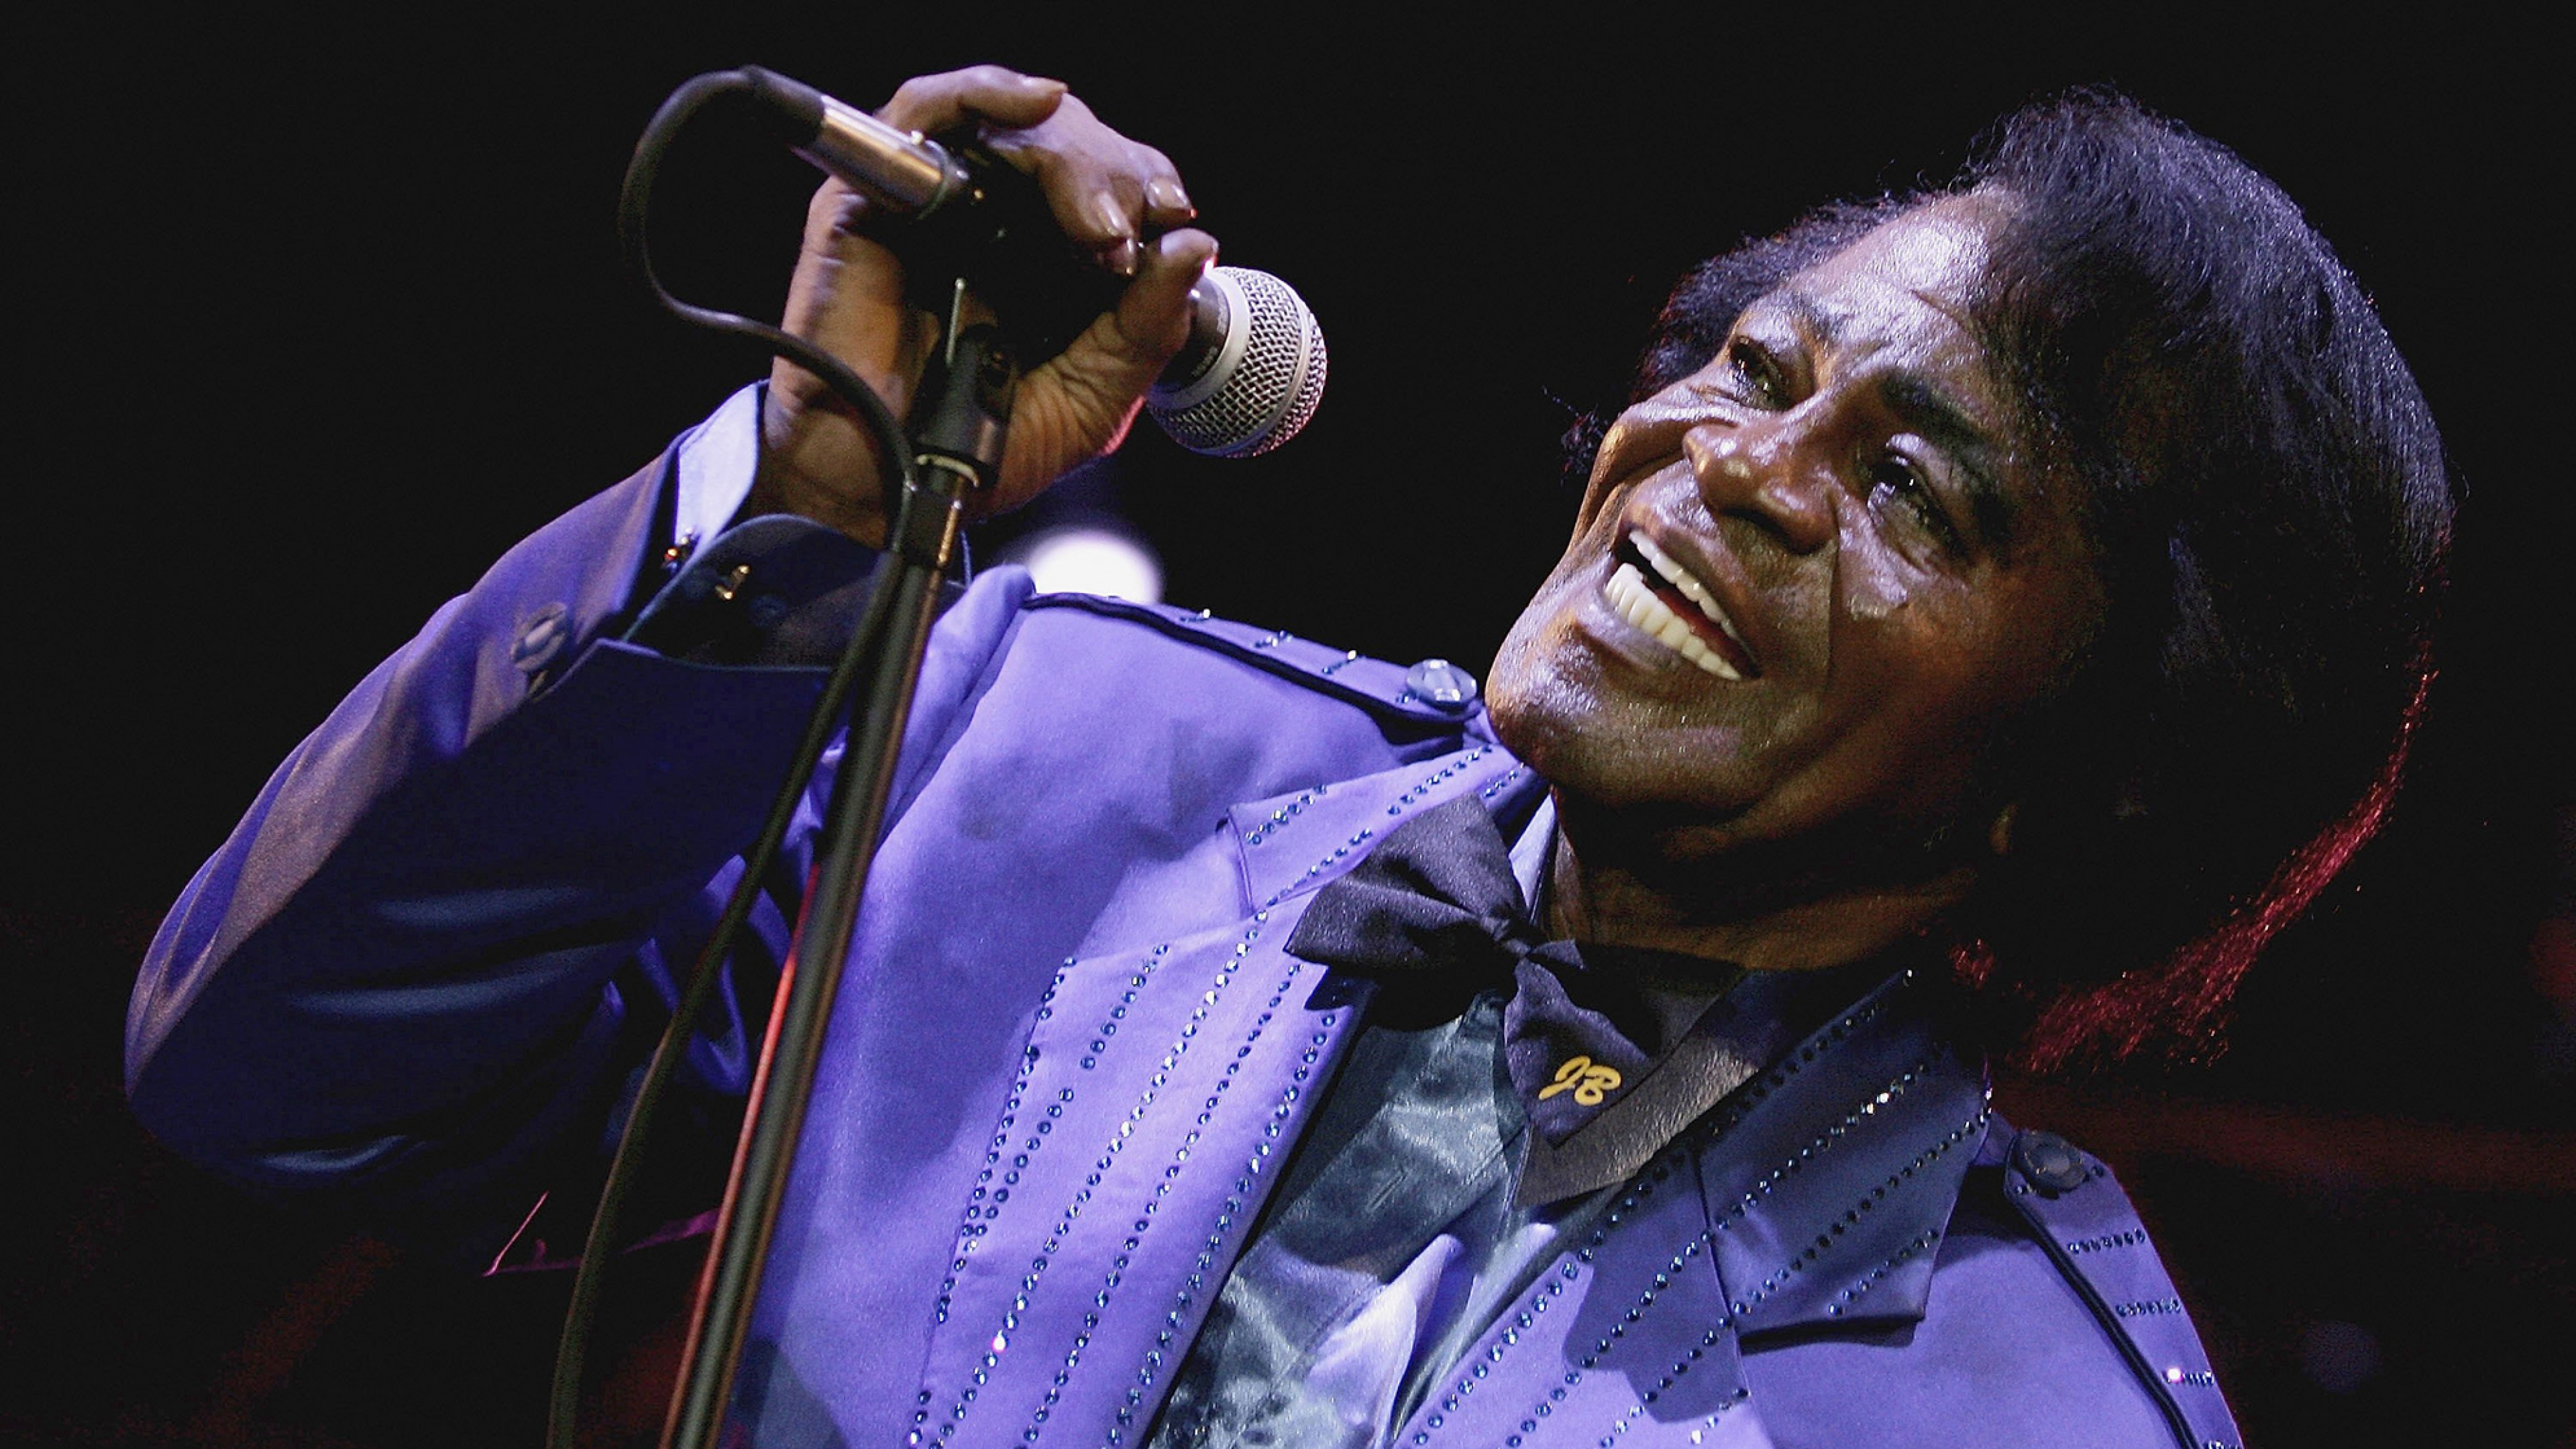 James Brown images